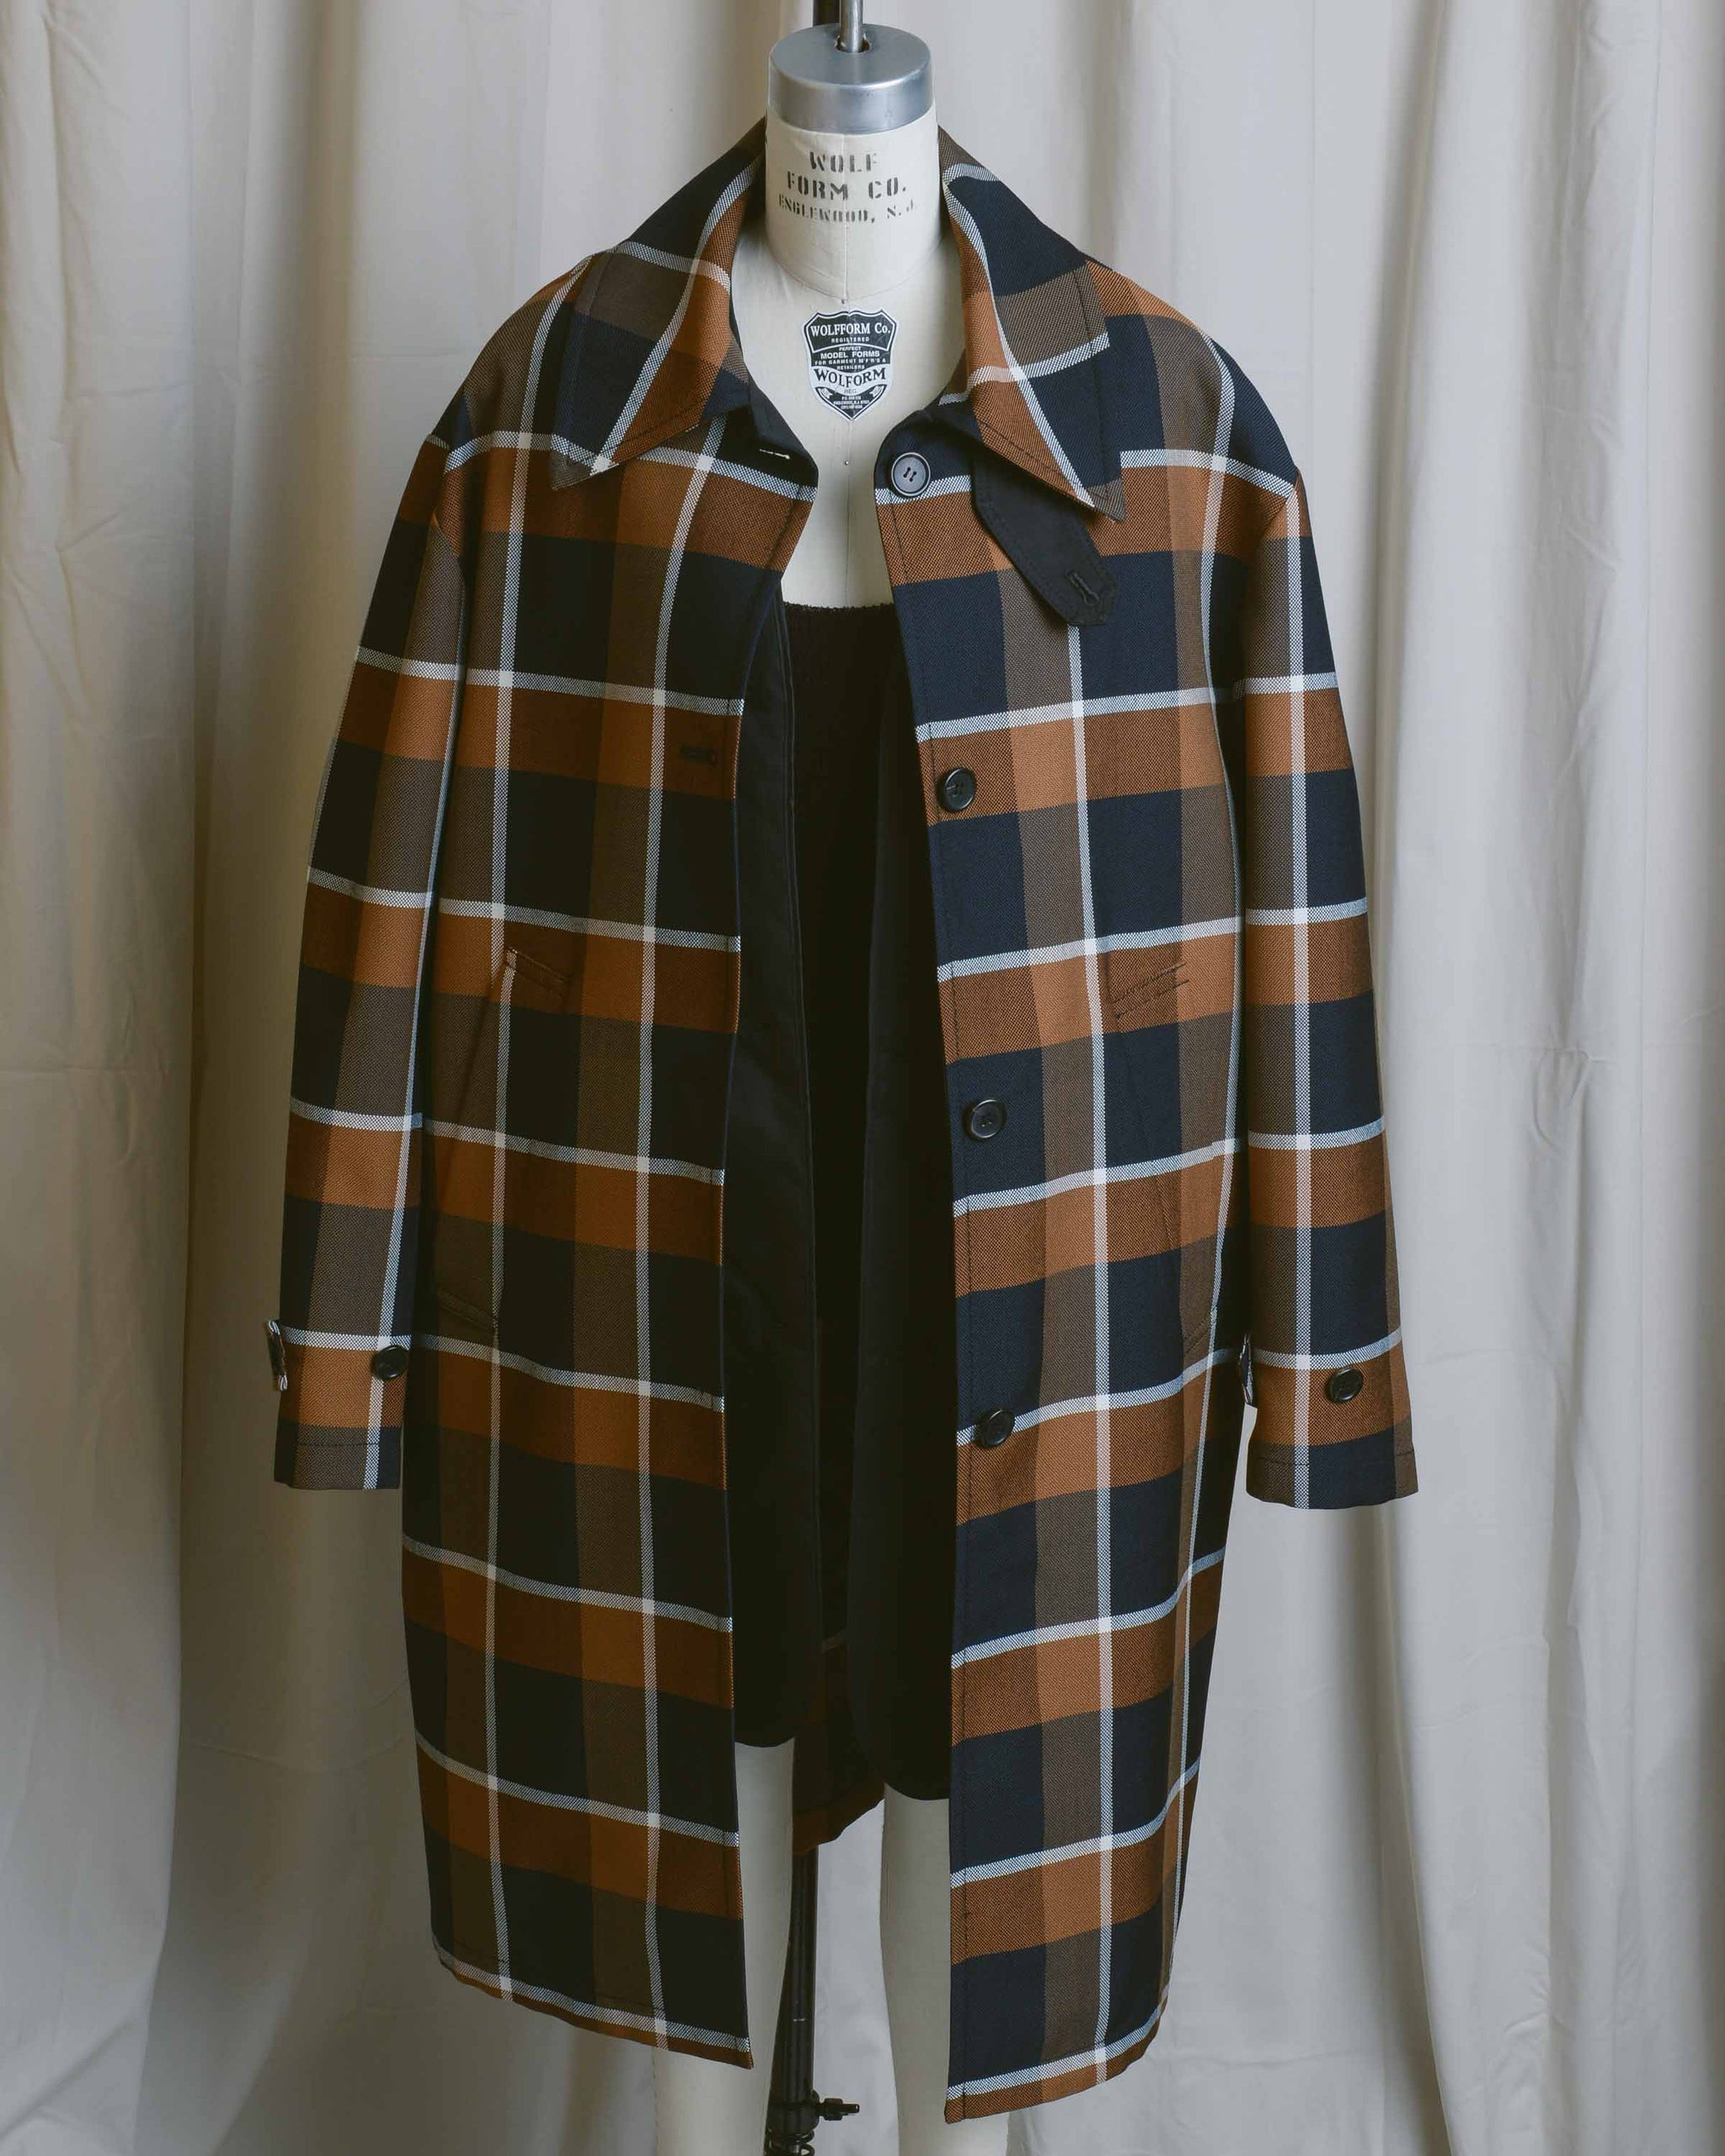 Damien Mac Check Coat with Removable Vest